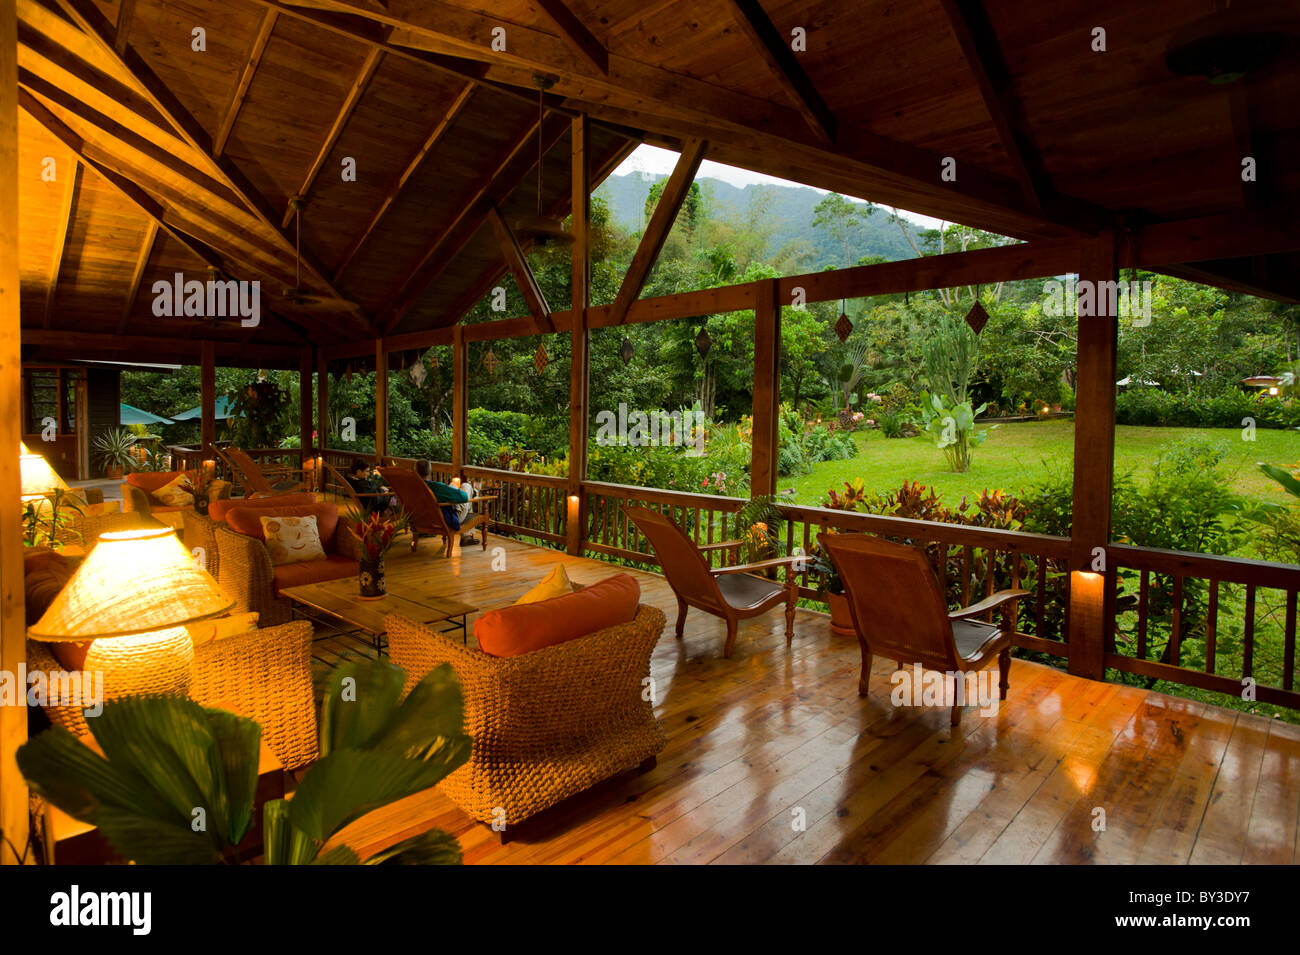 The Veranda at The Lodge at Pico Bonito, La Ceiba, Hounduras where guests can sit and observe the tropical gardens - Stock Image